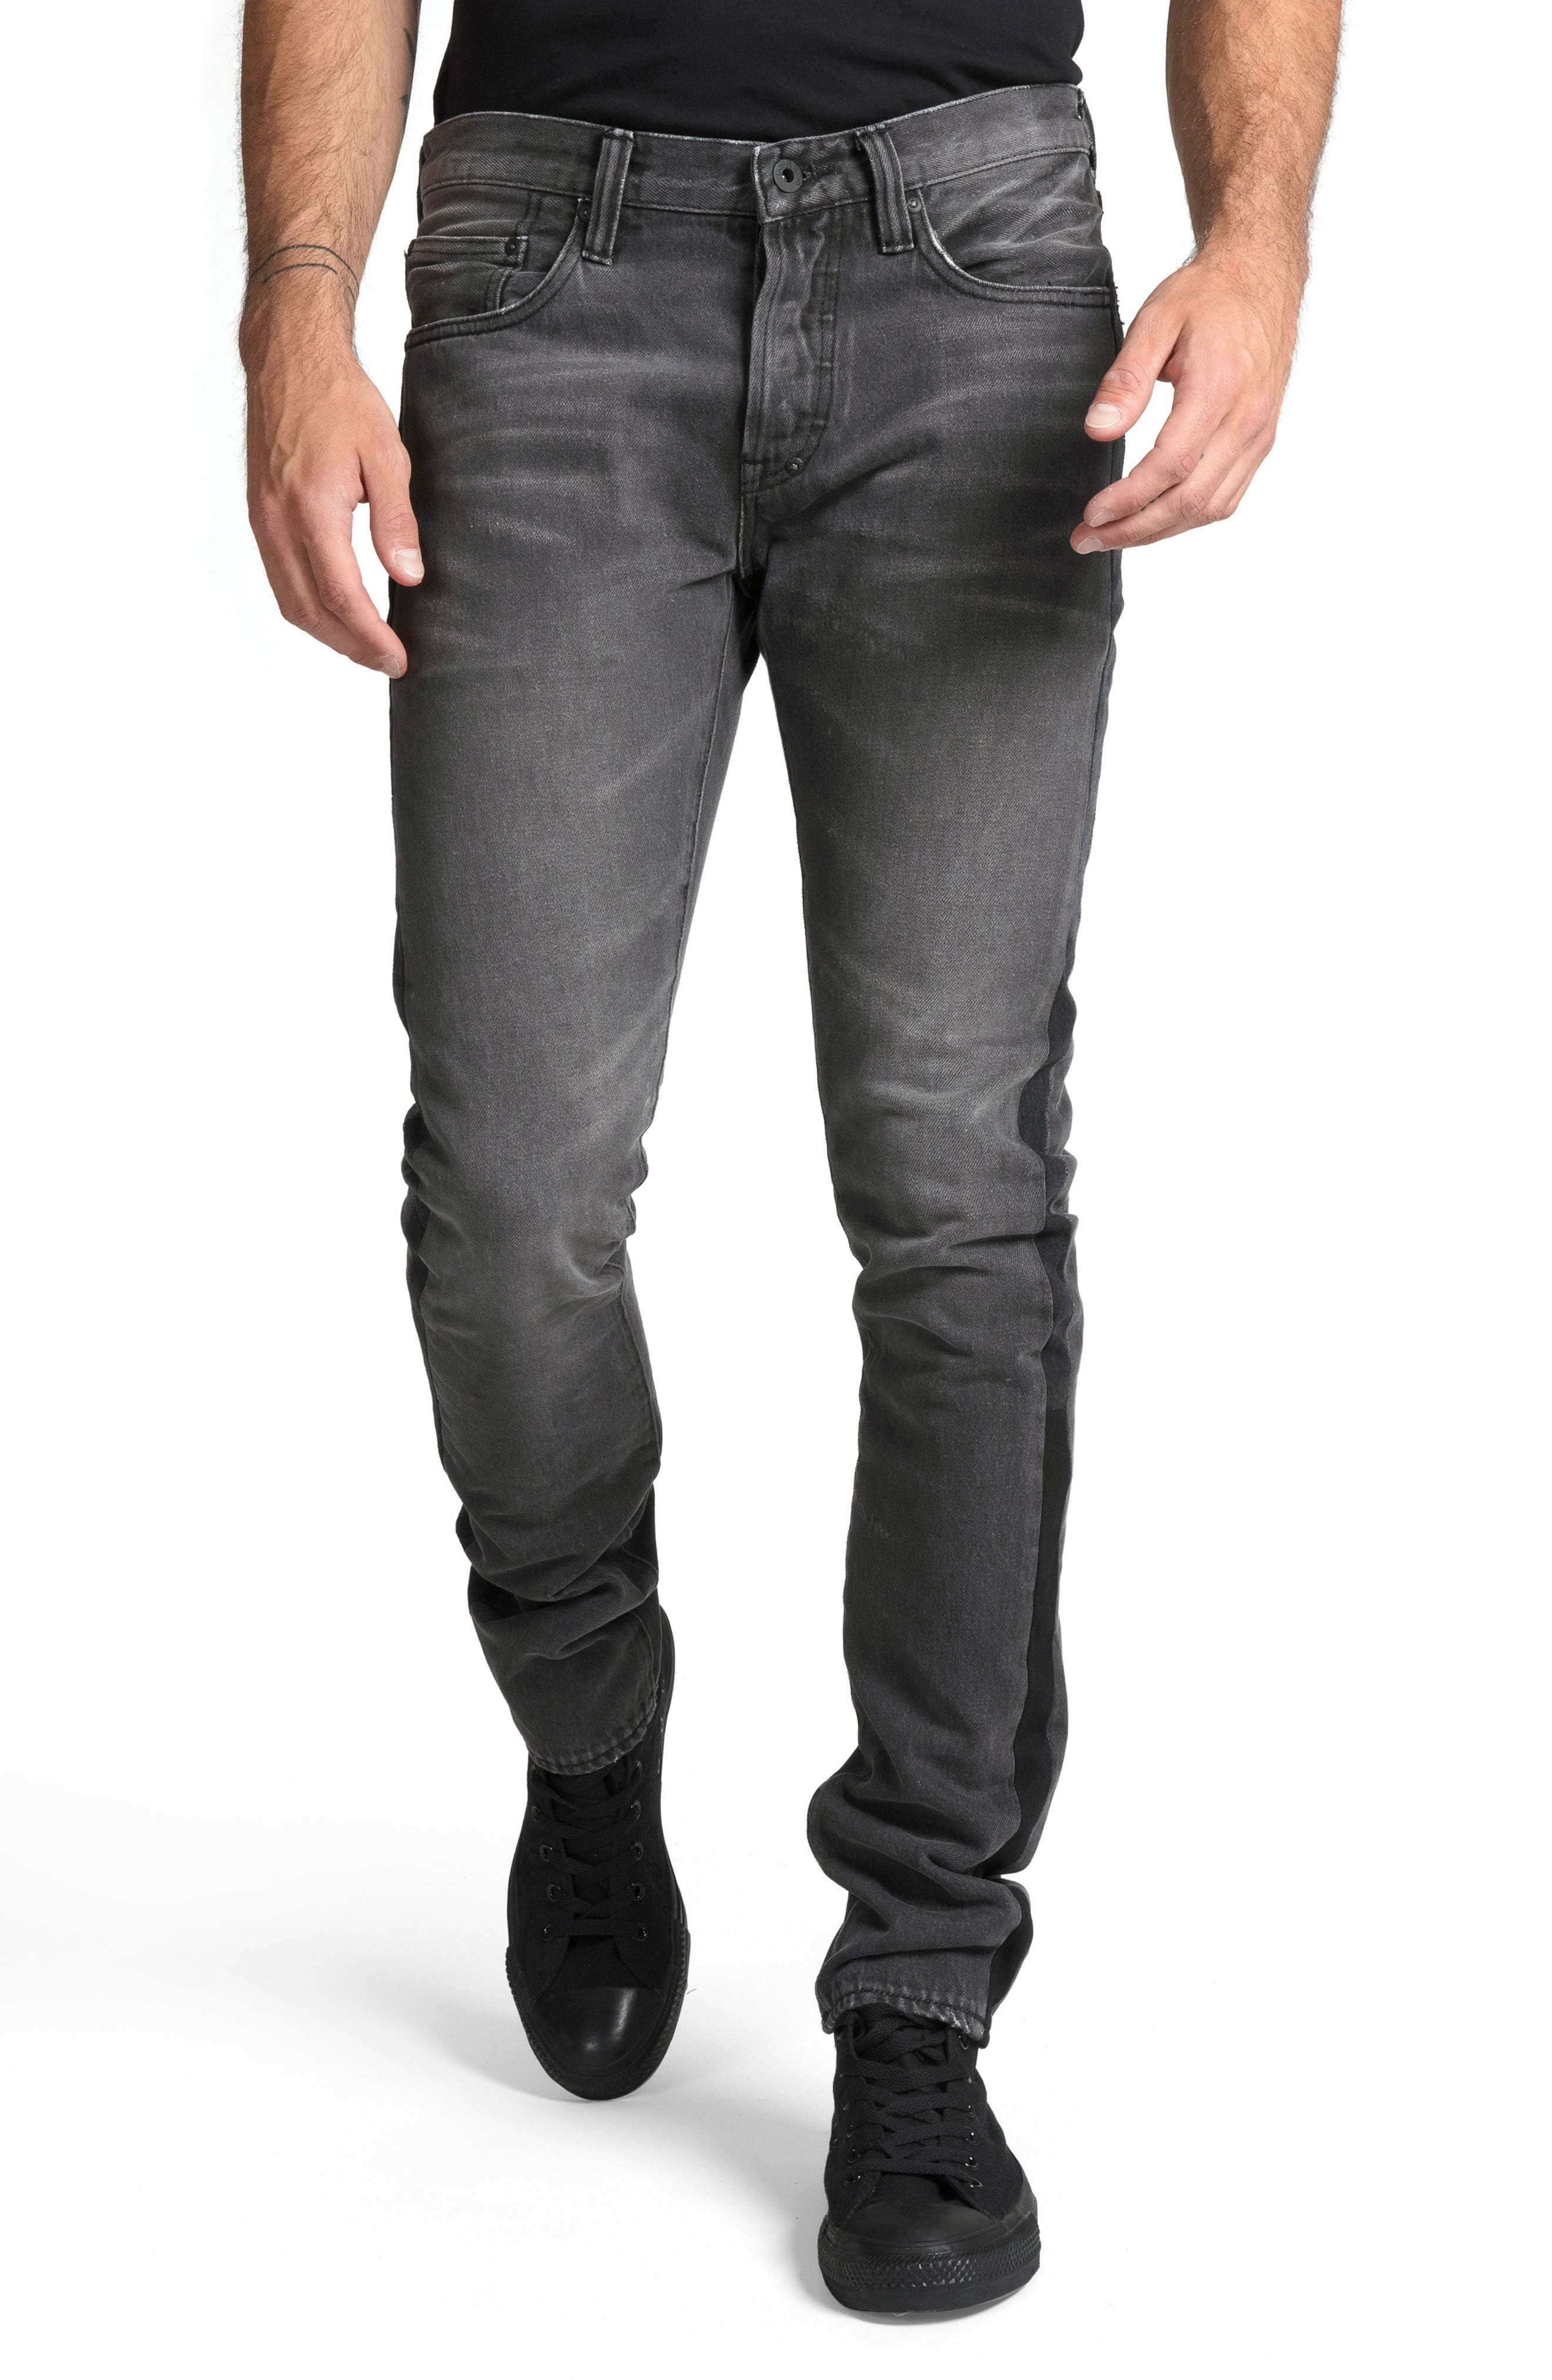 Le Sabre Slim Fit Jeans,                         Main,                         color, ABHORRENT